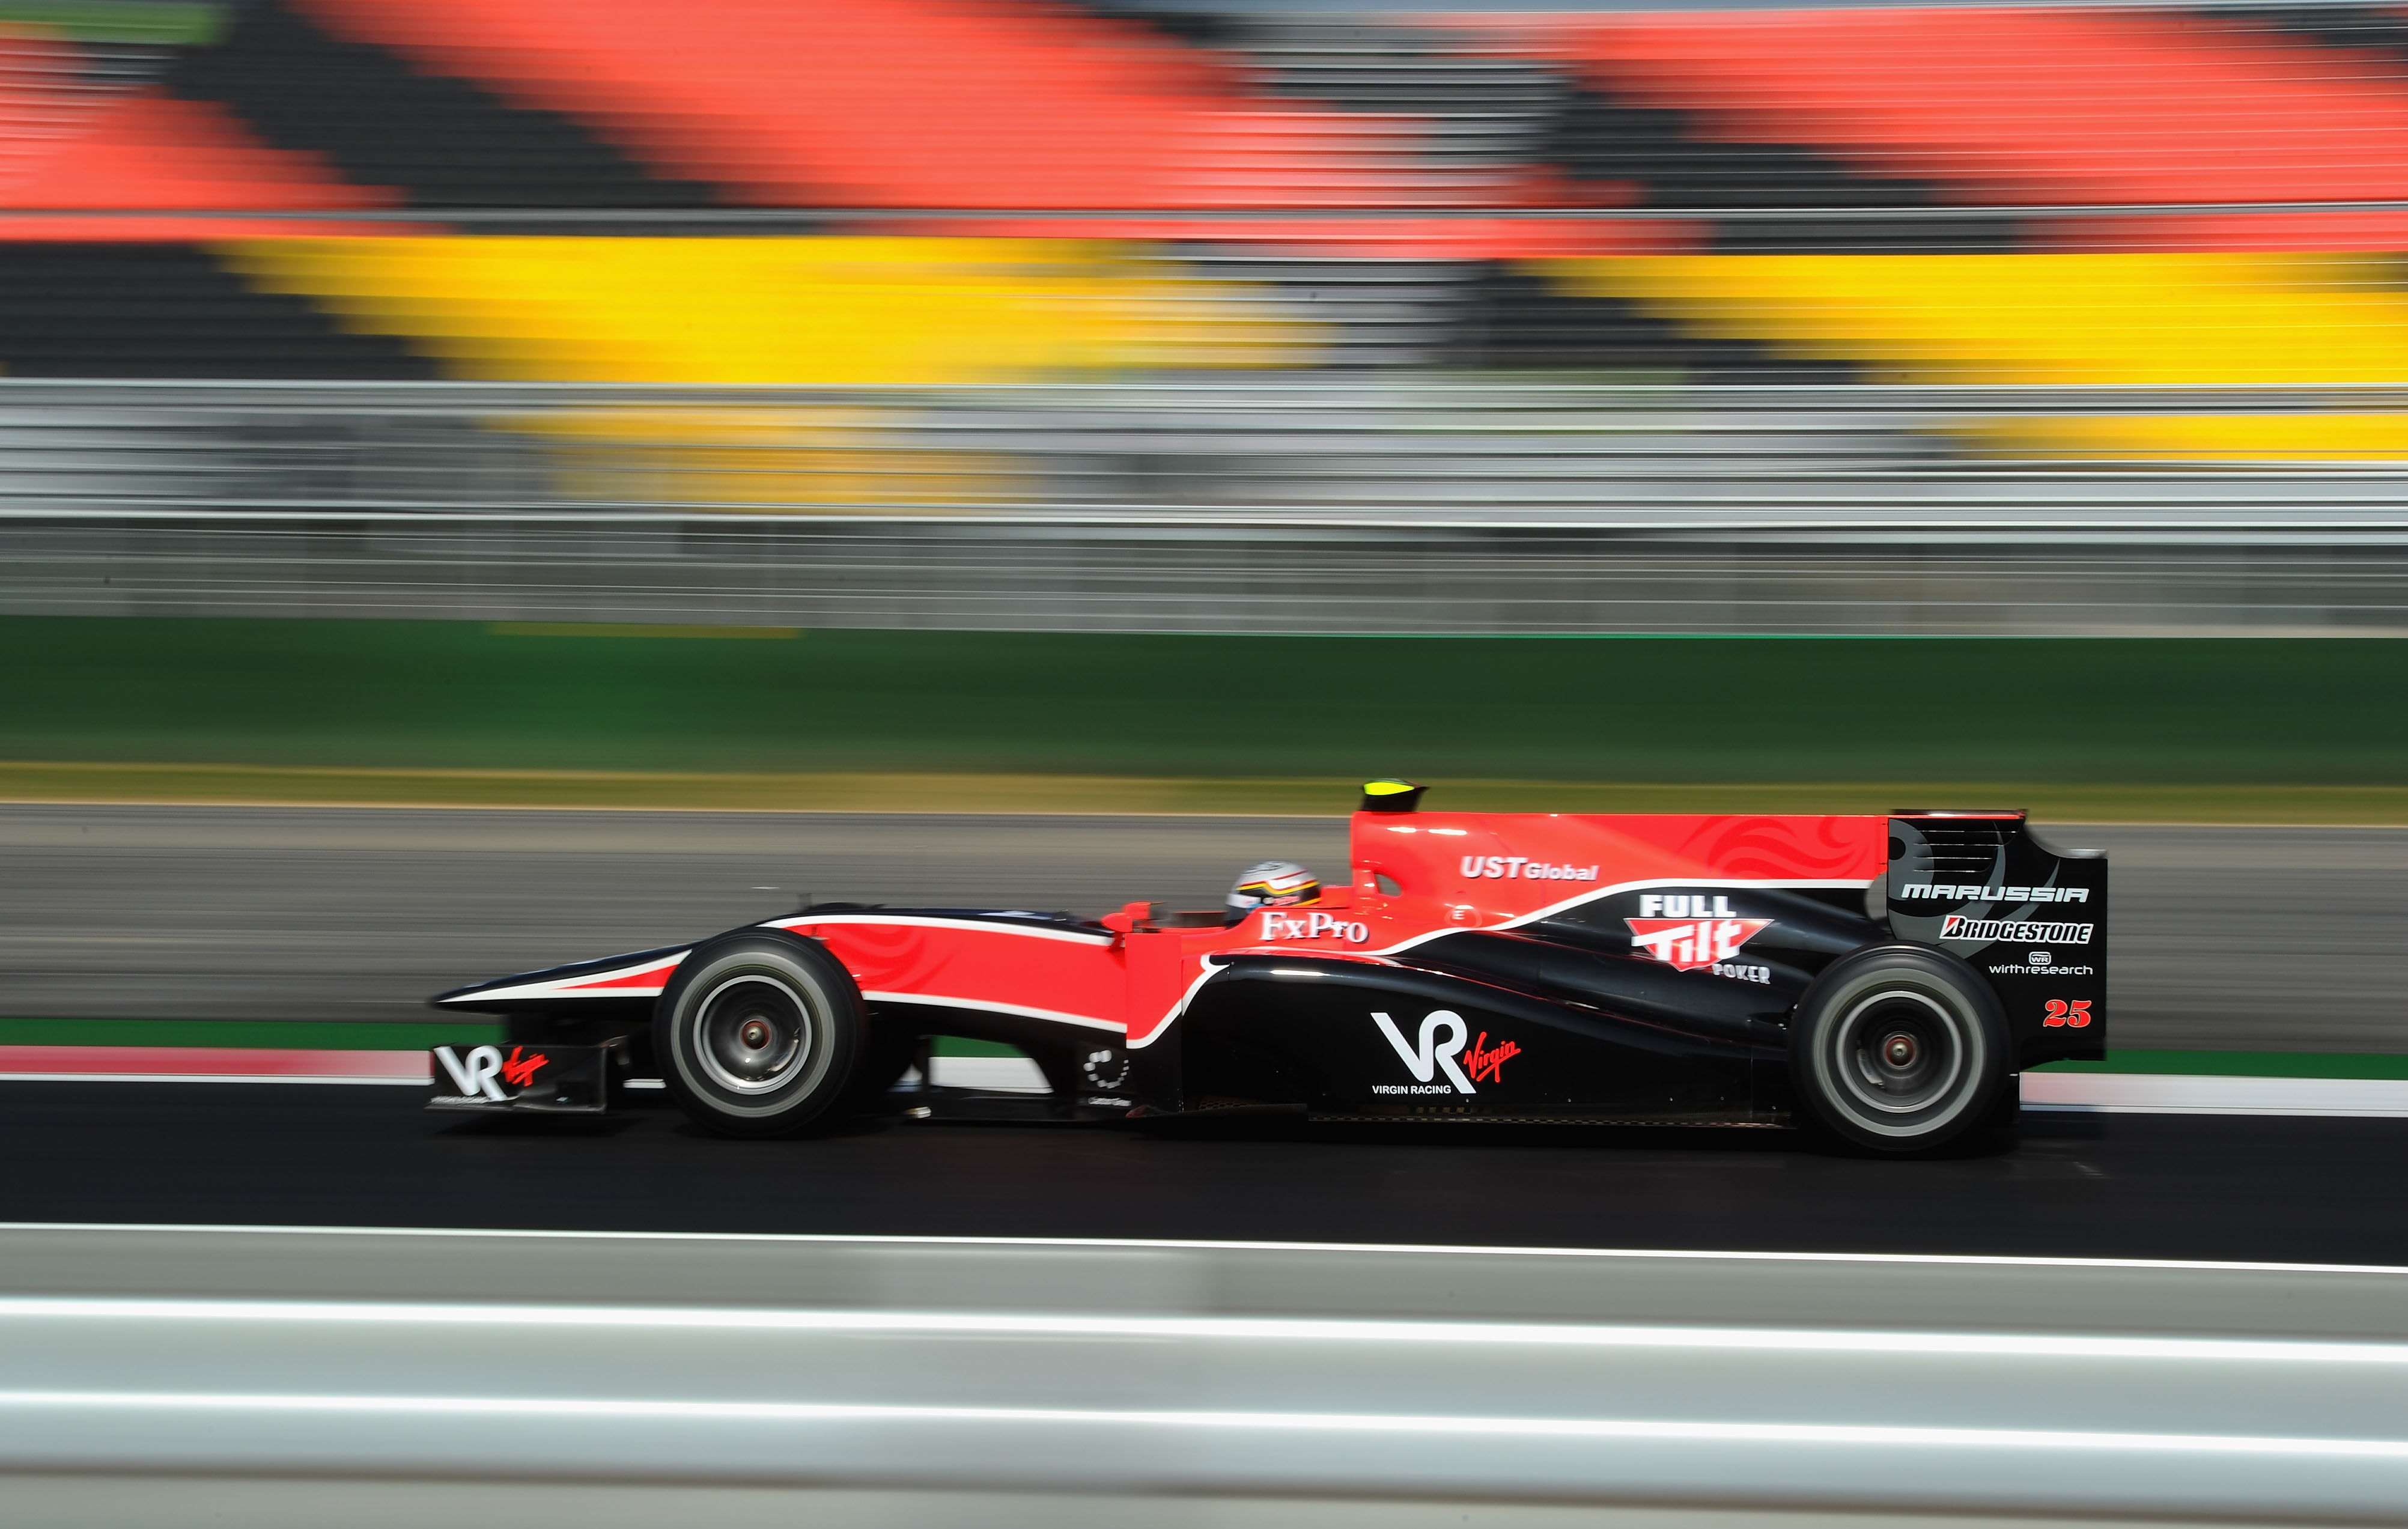 YEONGAM GUN, SOUTH KOREA - OCTOBER 22:  Jerome d'Ambrosio of Belgium and Virgin GP drives during practice for the Korean Formula One Grand Prix at the Korea International Circuit on October 22, 2010 in Yeongam-gun, South Korea.  (Photo by Clive Mason/Gett